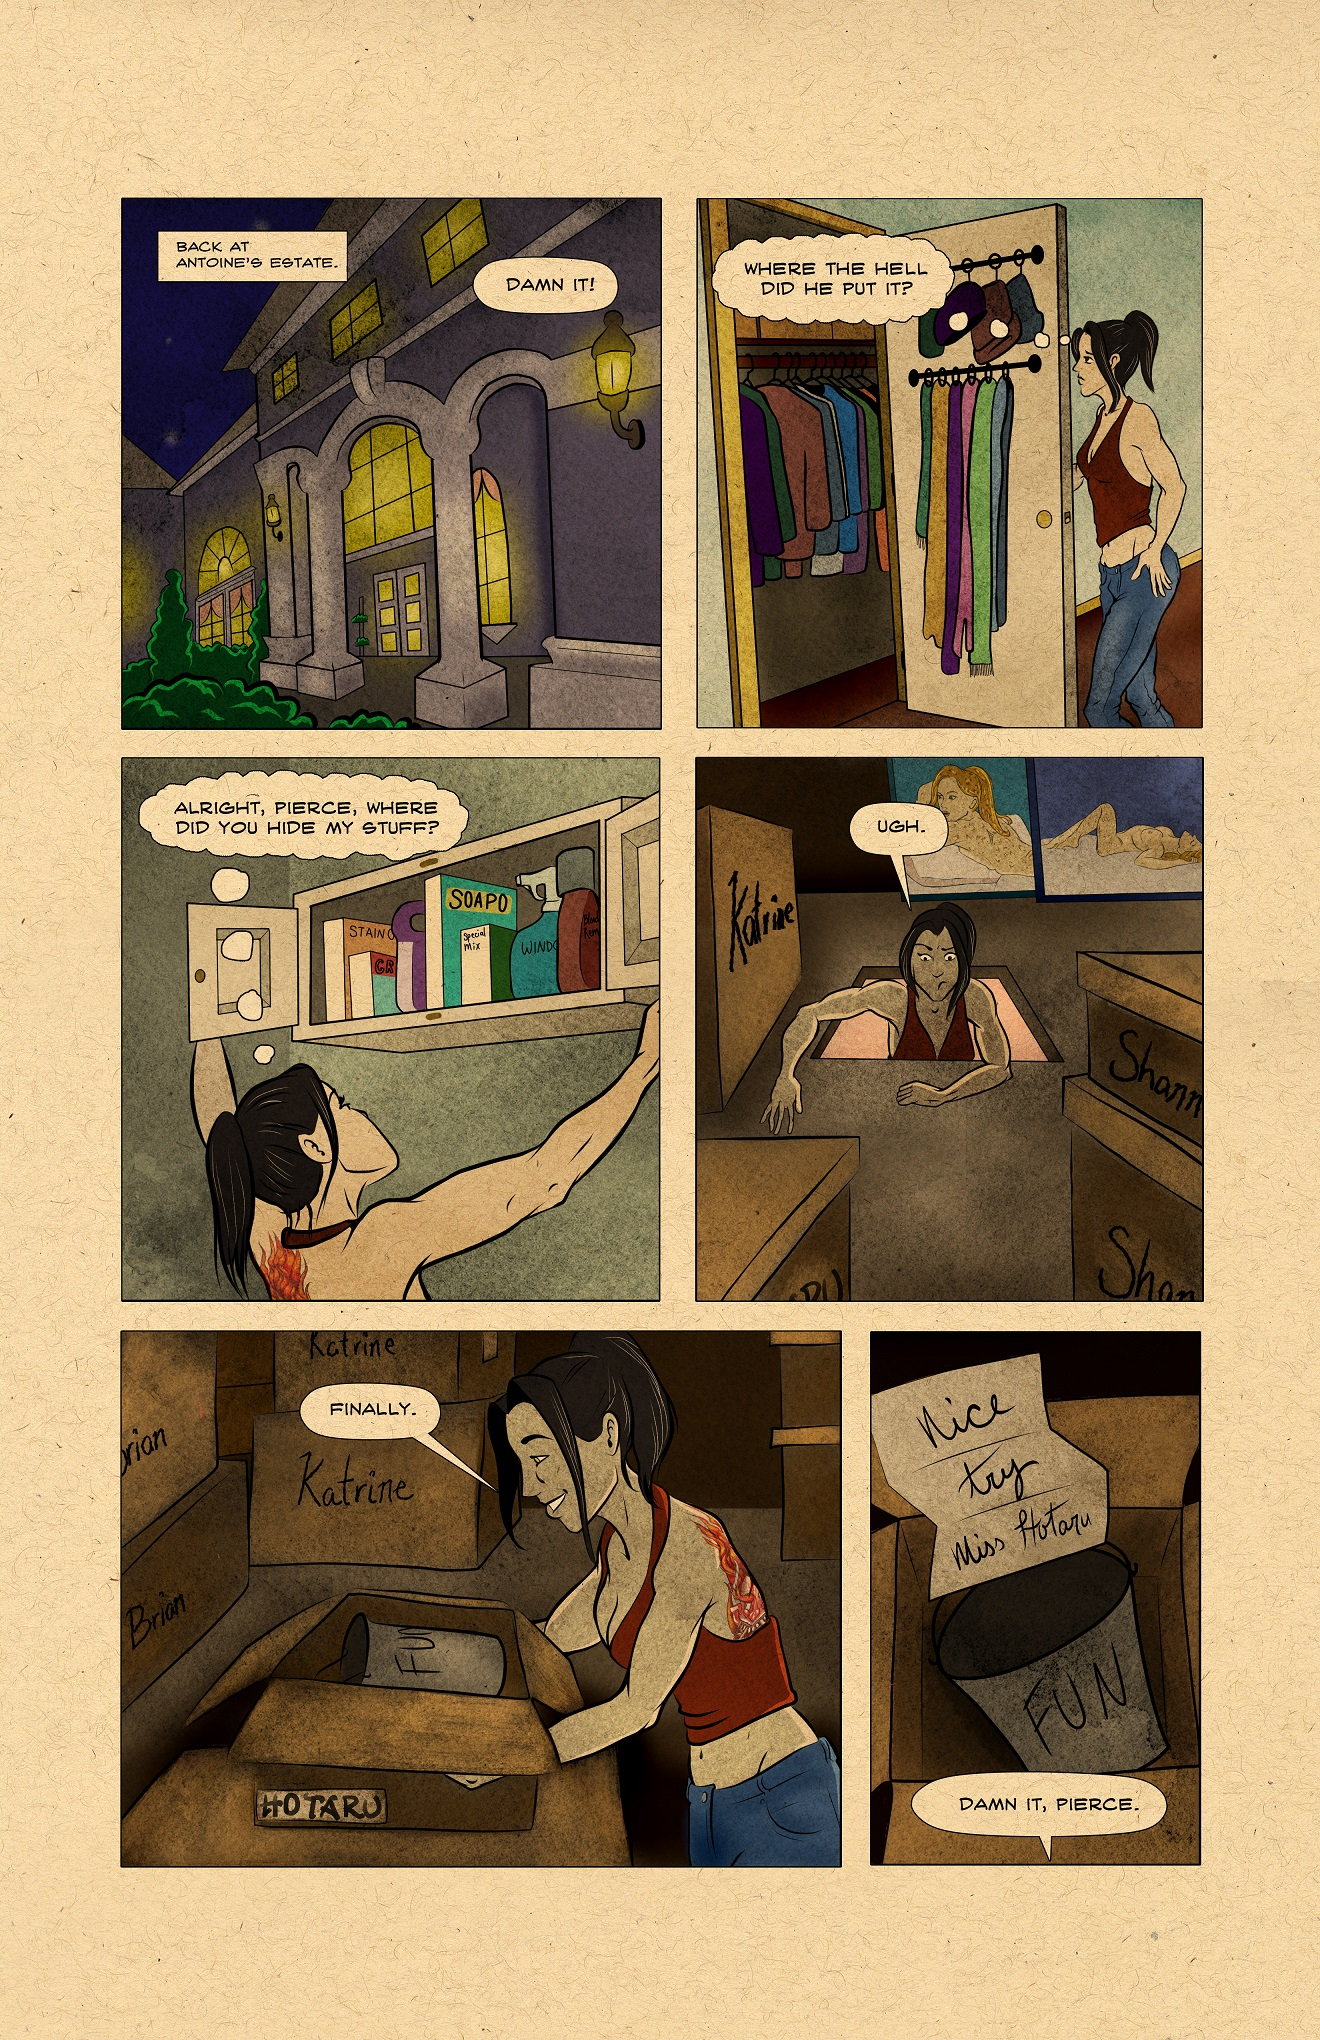 Ch 4: Page 27